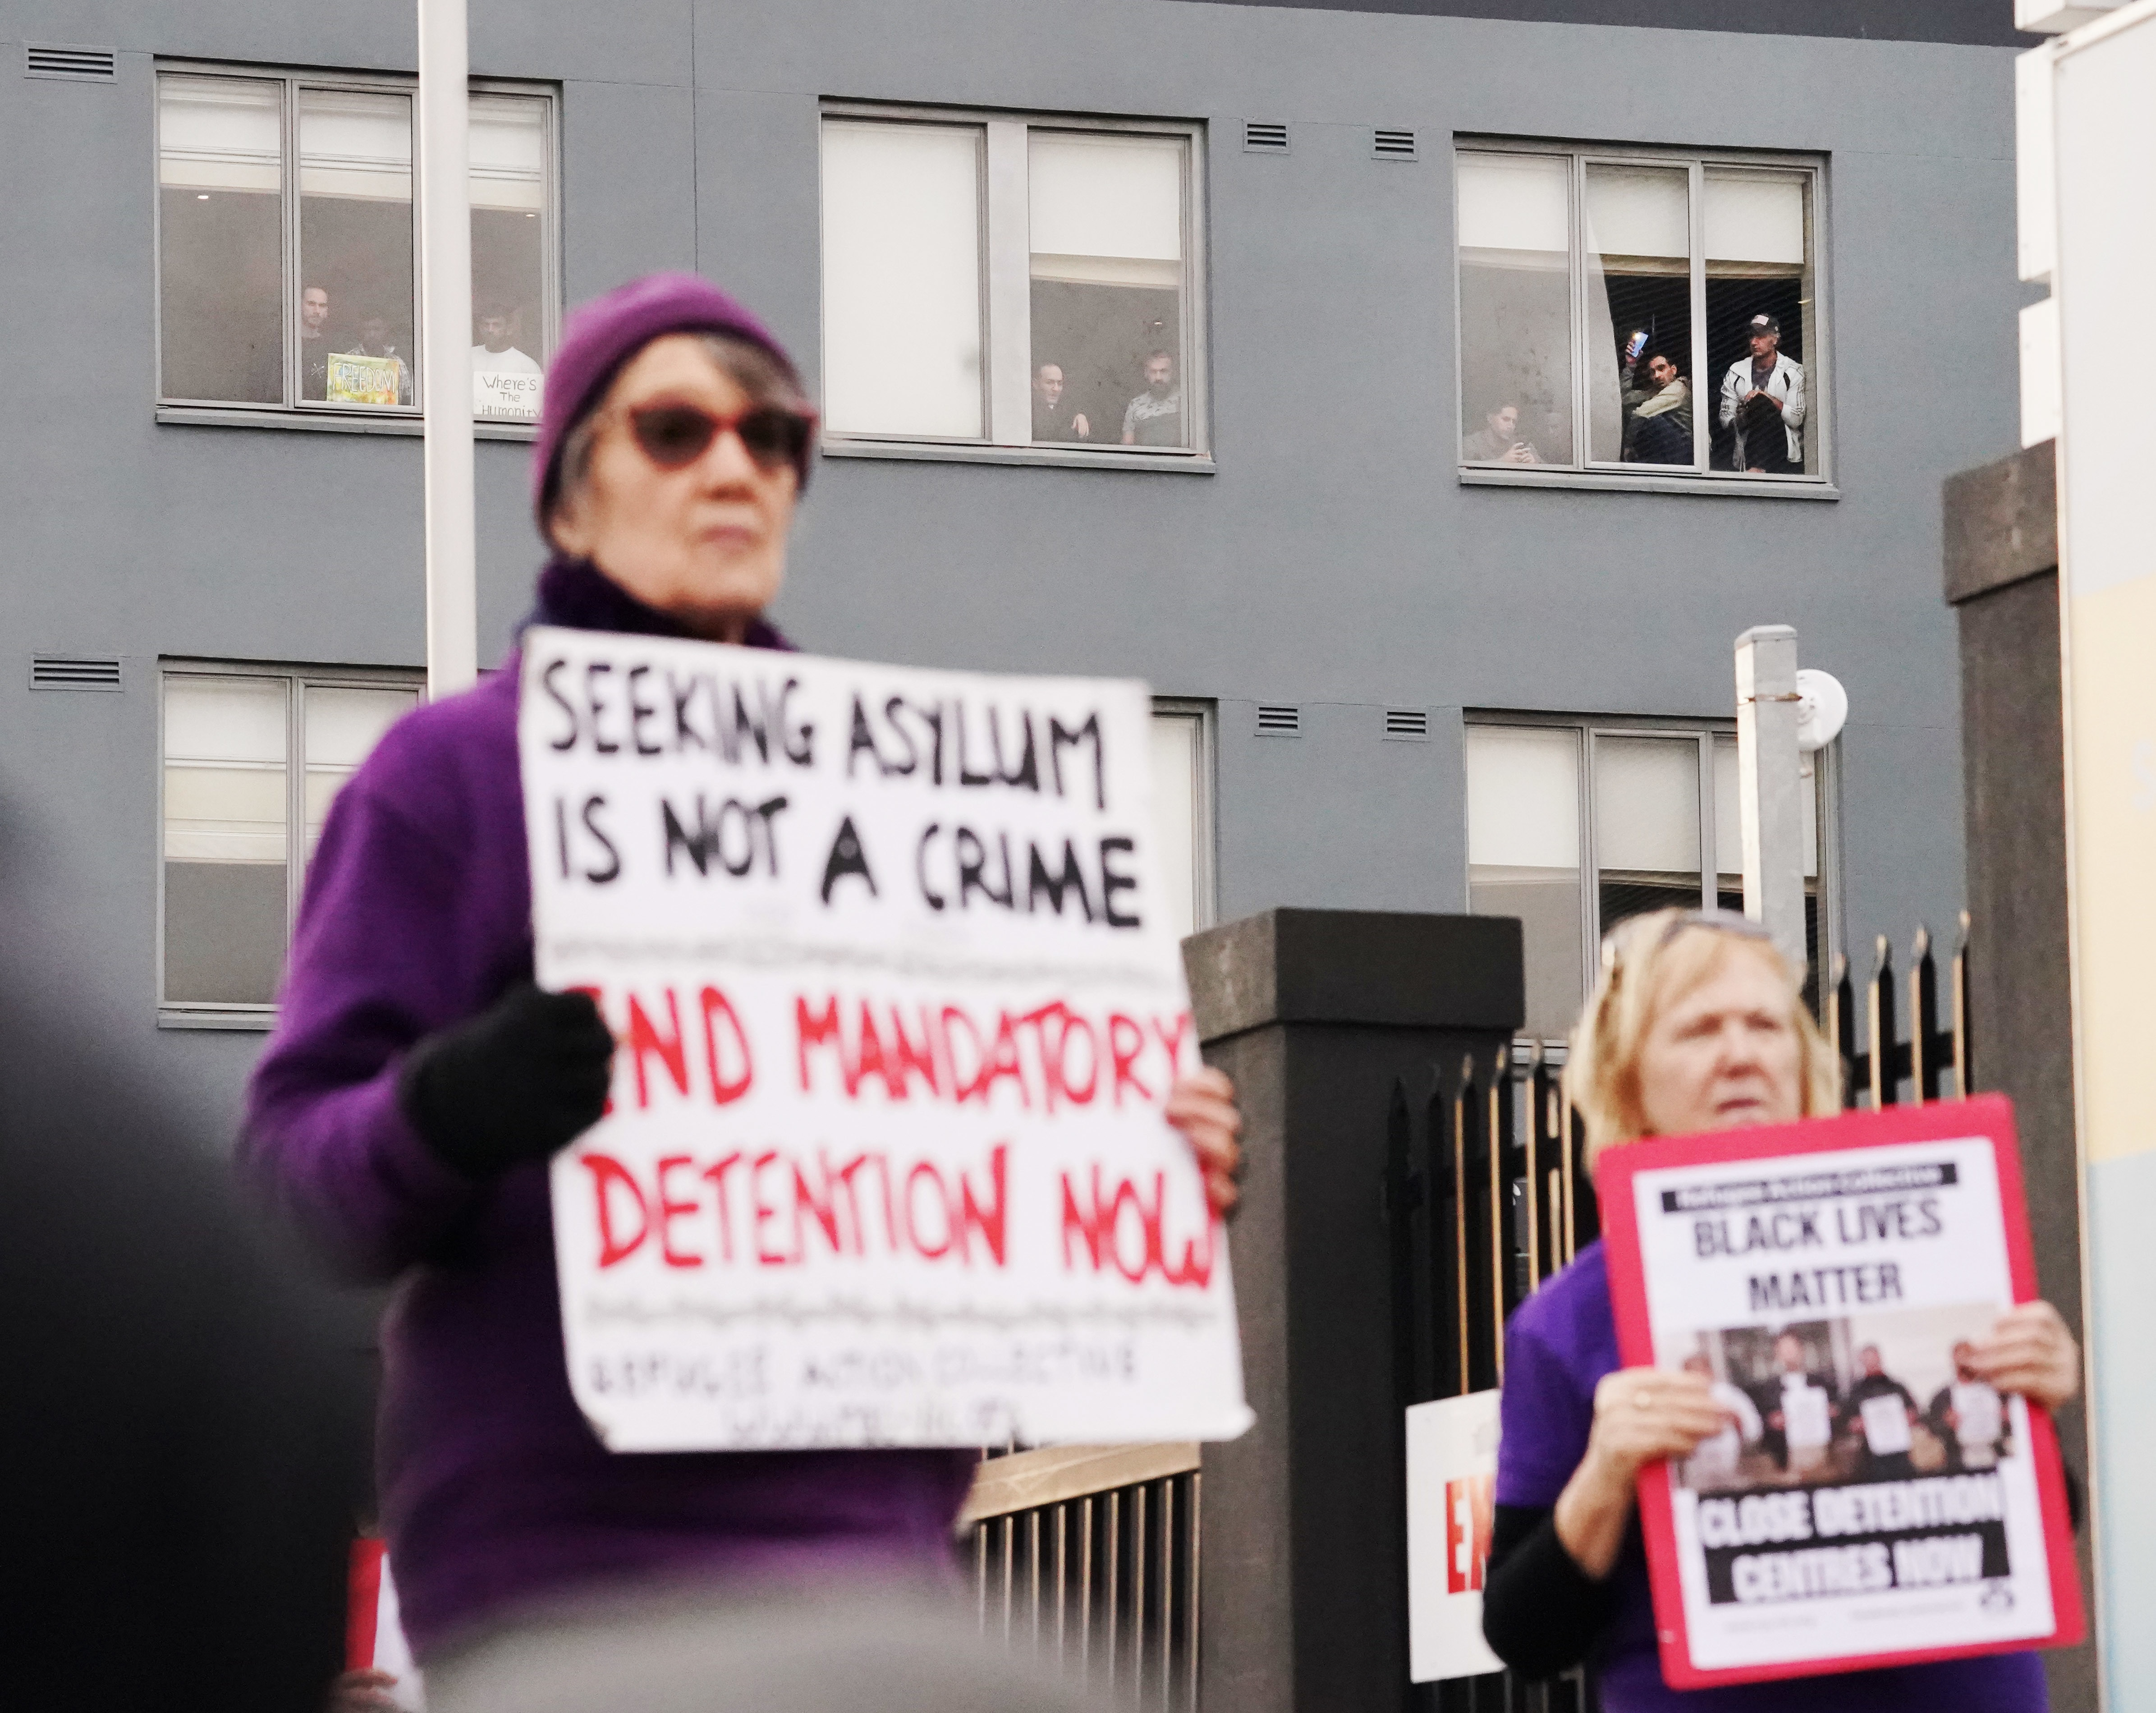 Human rights advocates have called for more immigration detainees to be placed in community detention due to the coronavirus crisis.